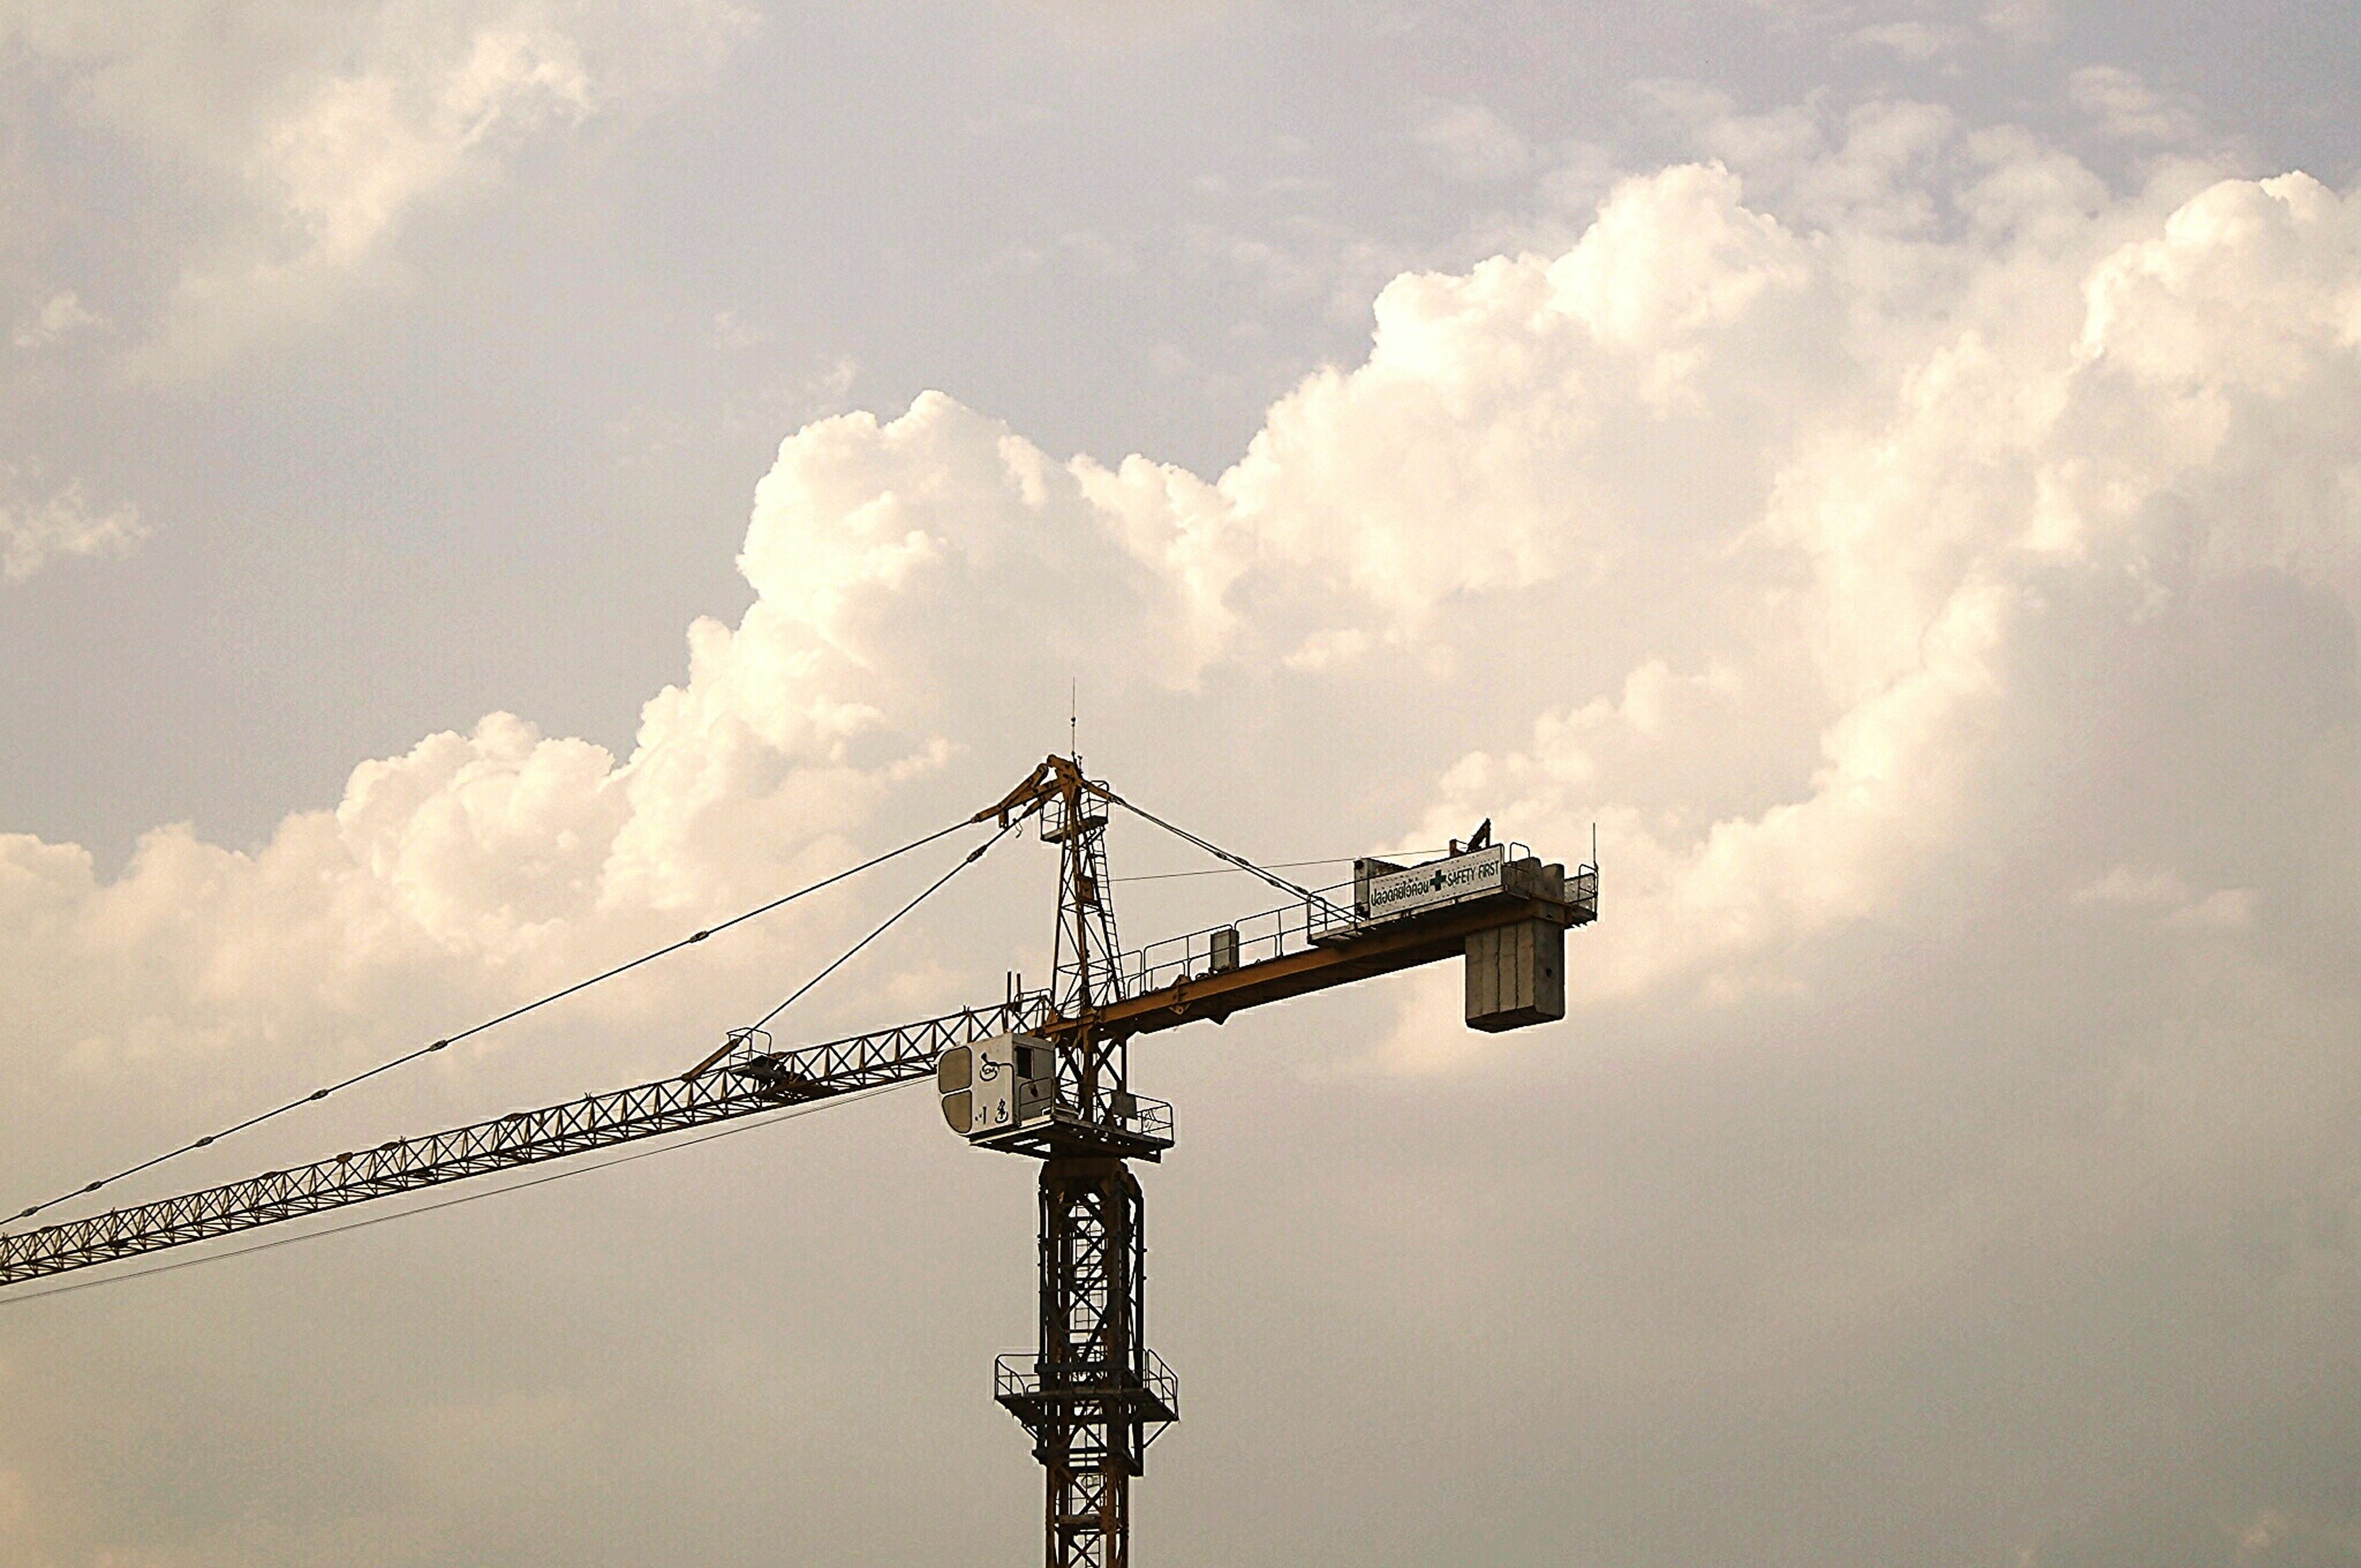 low angle view, sky, crane - construction machinery, construction site, cloud - sky, development, crane, built structure, cloudy, connection, communication, technology, cloud, construction, industry, silhouette, tall - high, fuel and power generation, metal, architecture